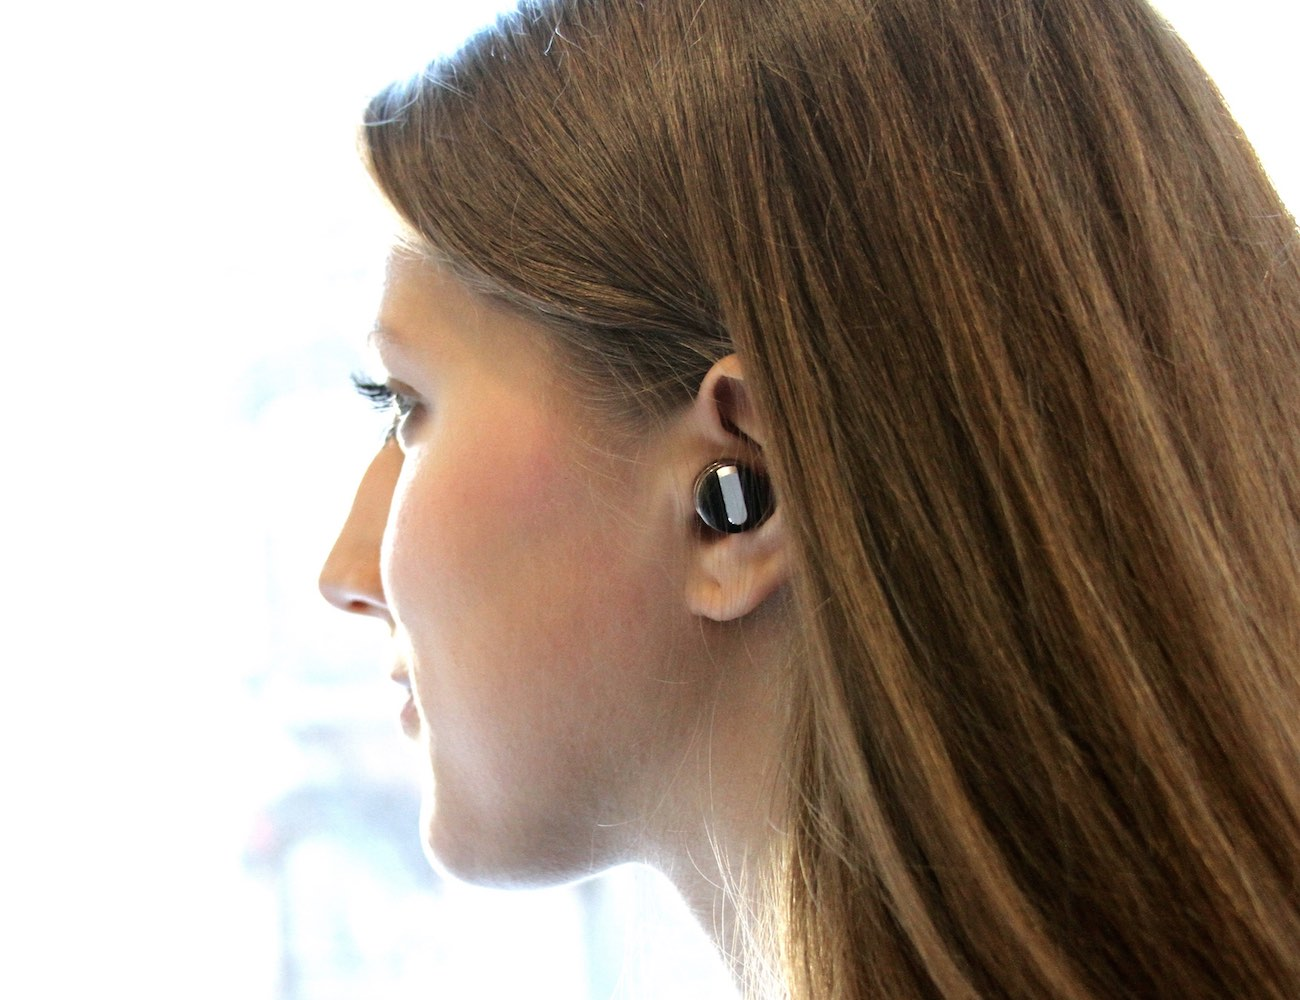 The BULLET Bluetooth 4.1 Earpiece + Charging Capsule by Schatzii